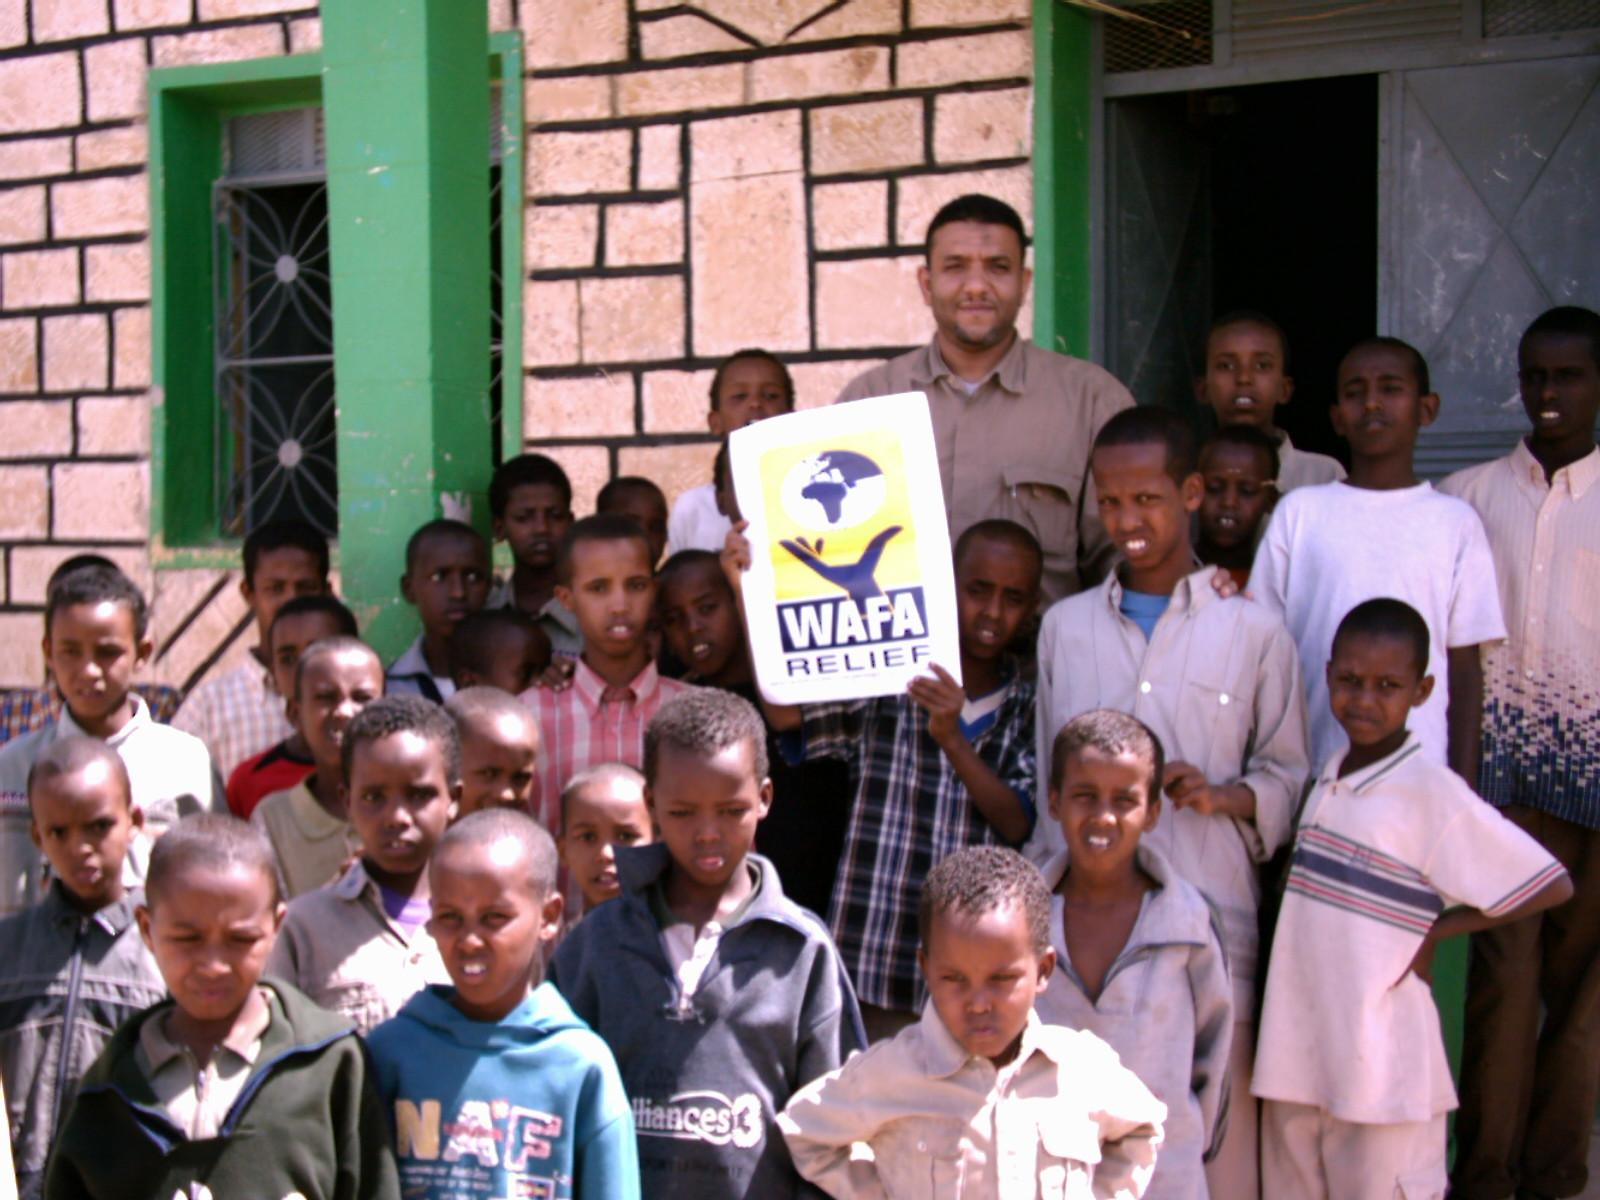 Somalia's war orphans educated for free.